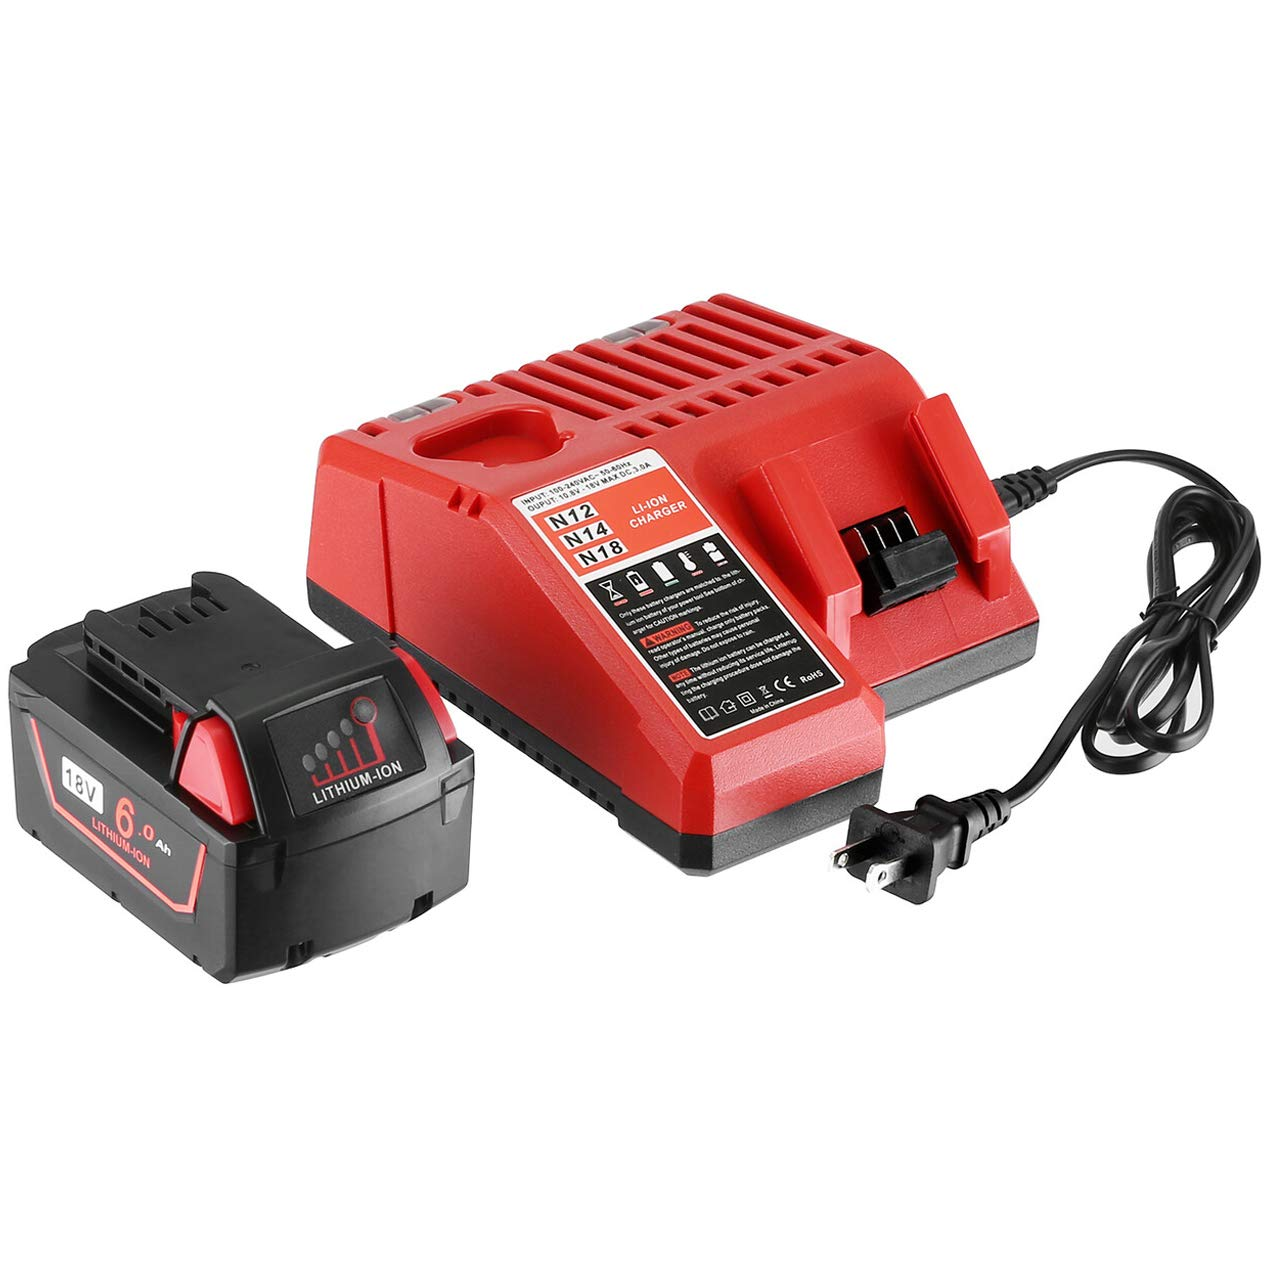 FirstPower 6.0Ah 18V M18 Replacement Battery - Compatible with Milwaukee 48-11-1852 M18 18V Lithium XC Cordless Power Tools & Charger for M12 M14 M18 Li-ion Battery